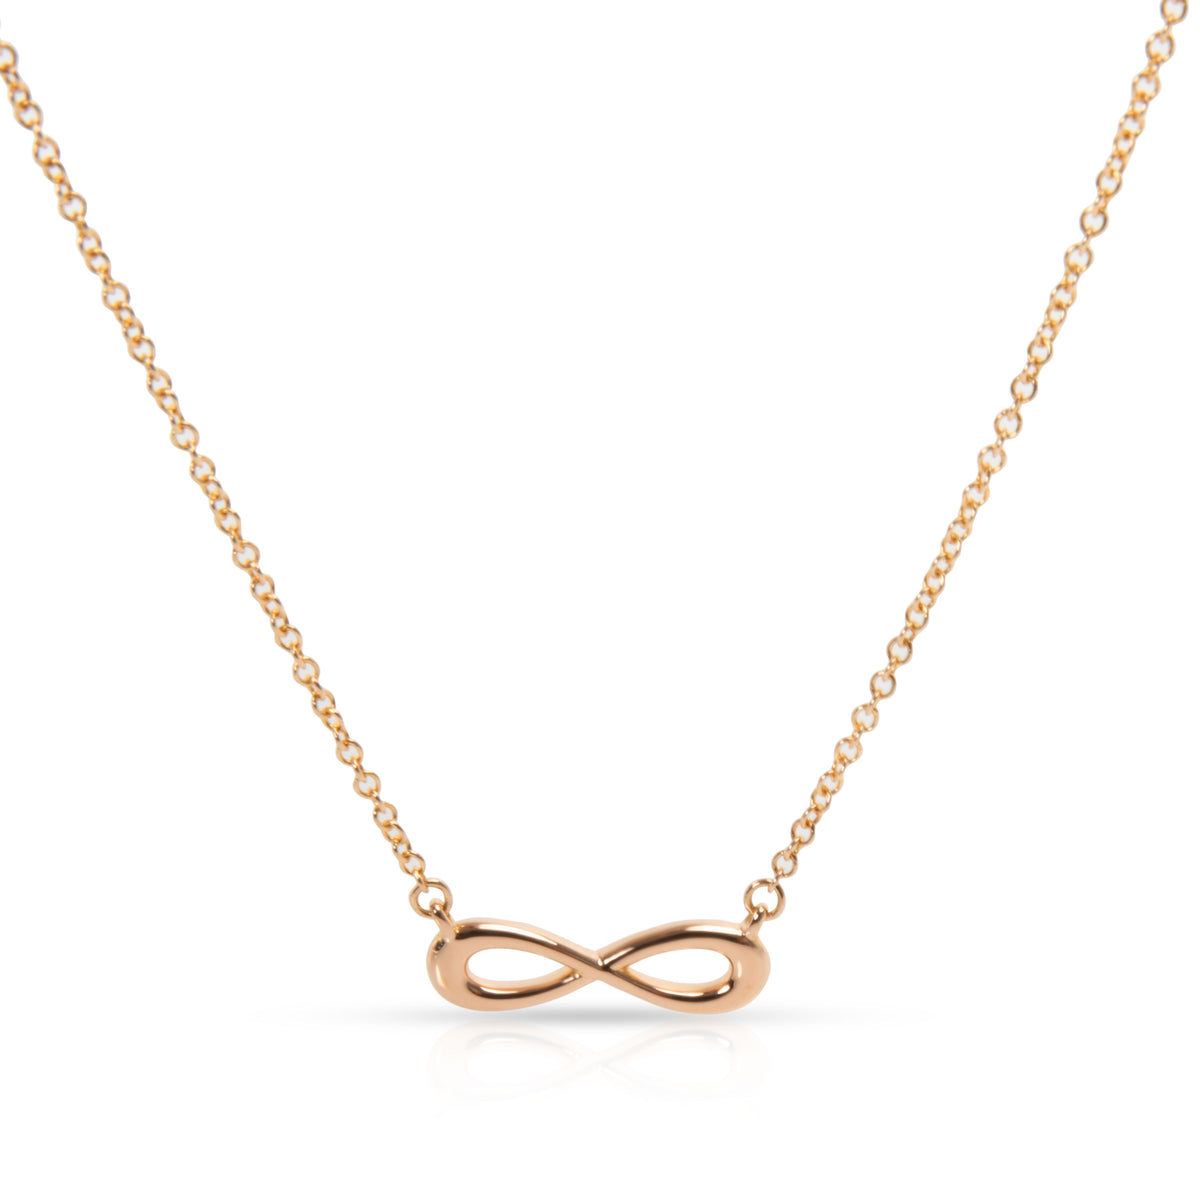 Tiffany & Co. Infinity Necklace in 18K Rose Gold